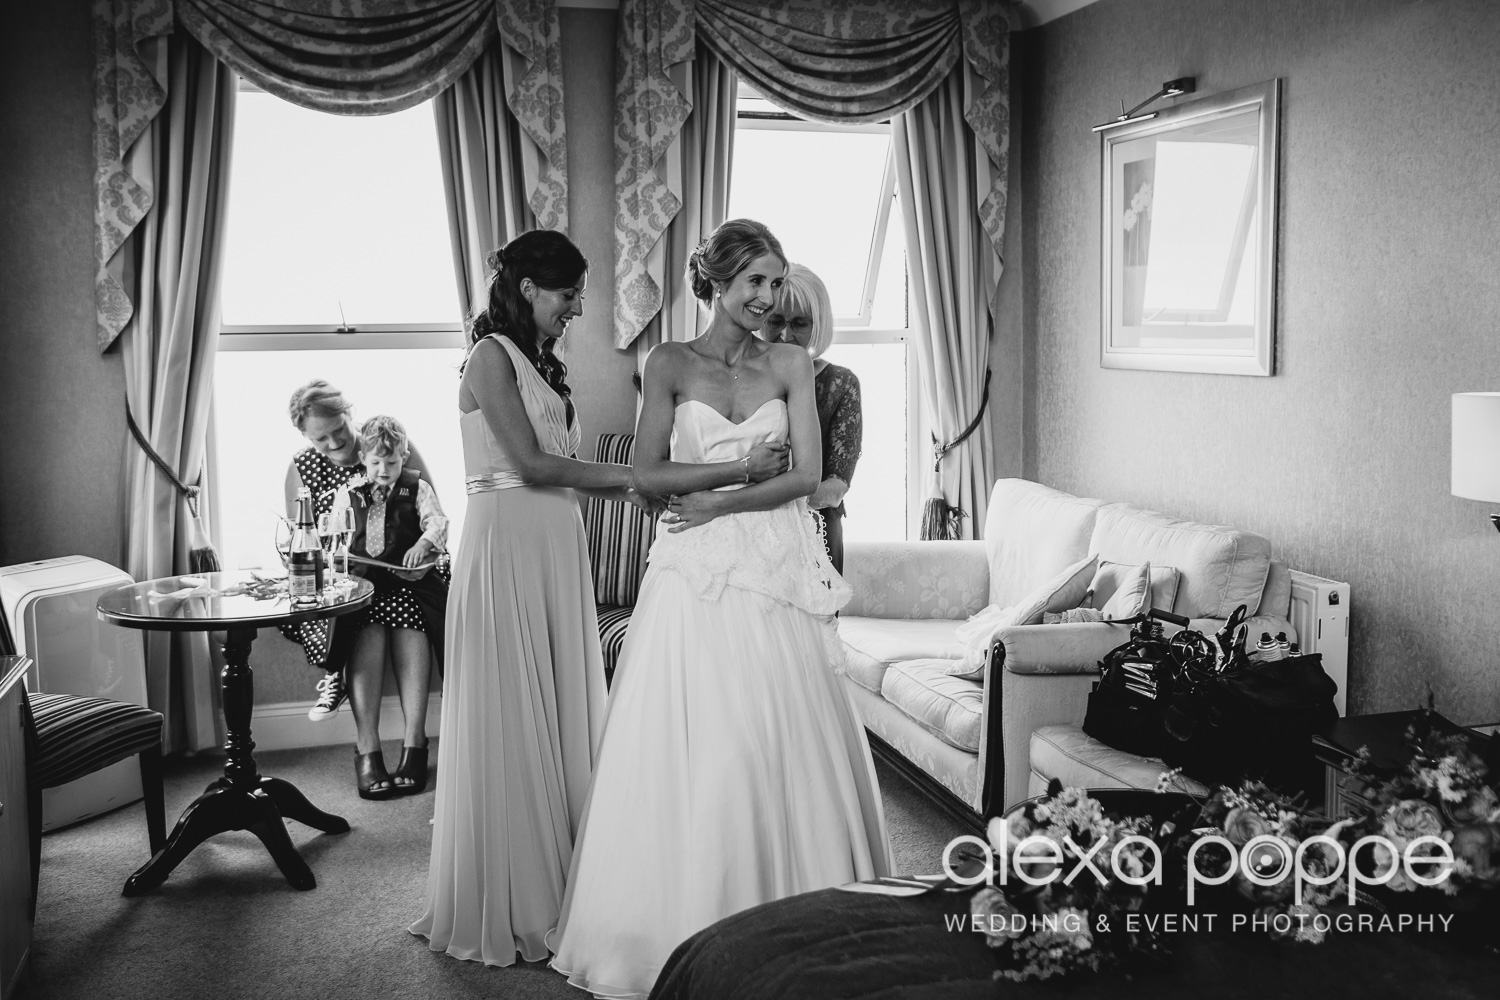 AZ_wedding_carlyonbay-13.jpg